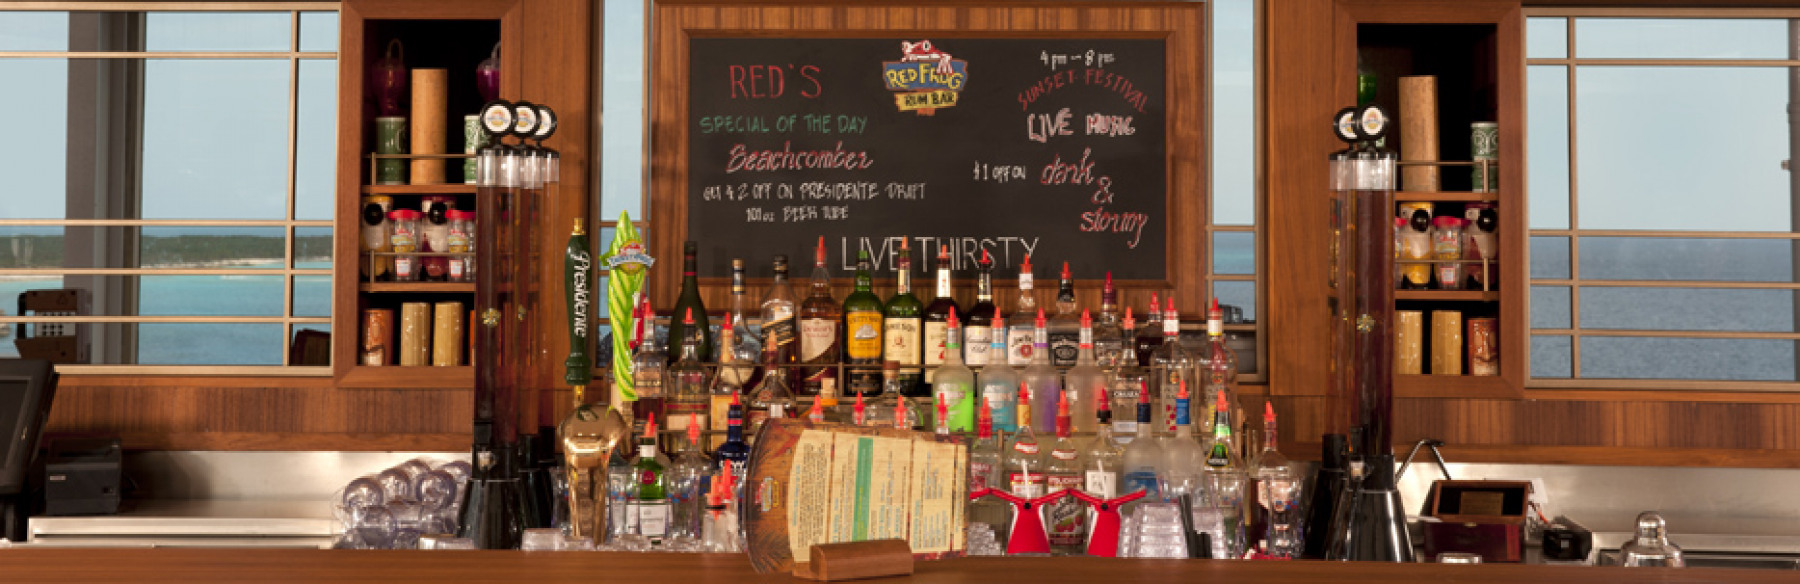 Carnival Glory Redfrog bar.jpg